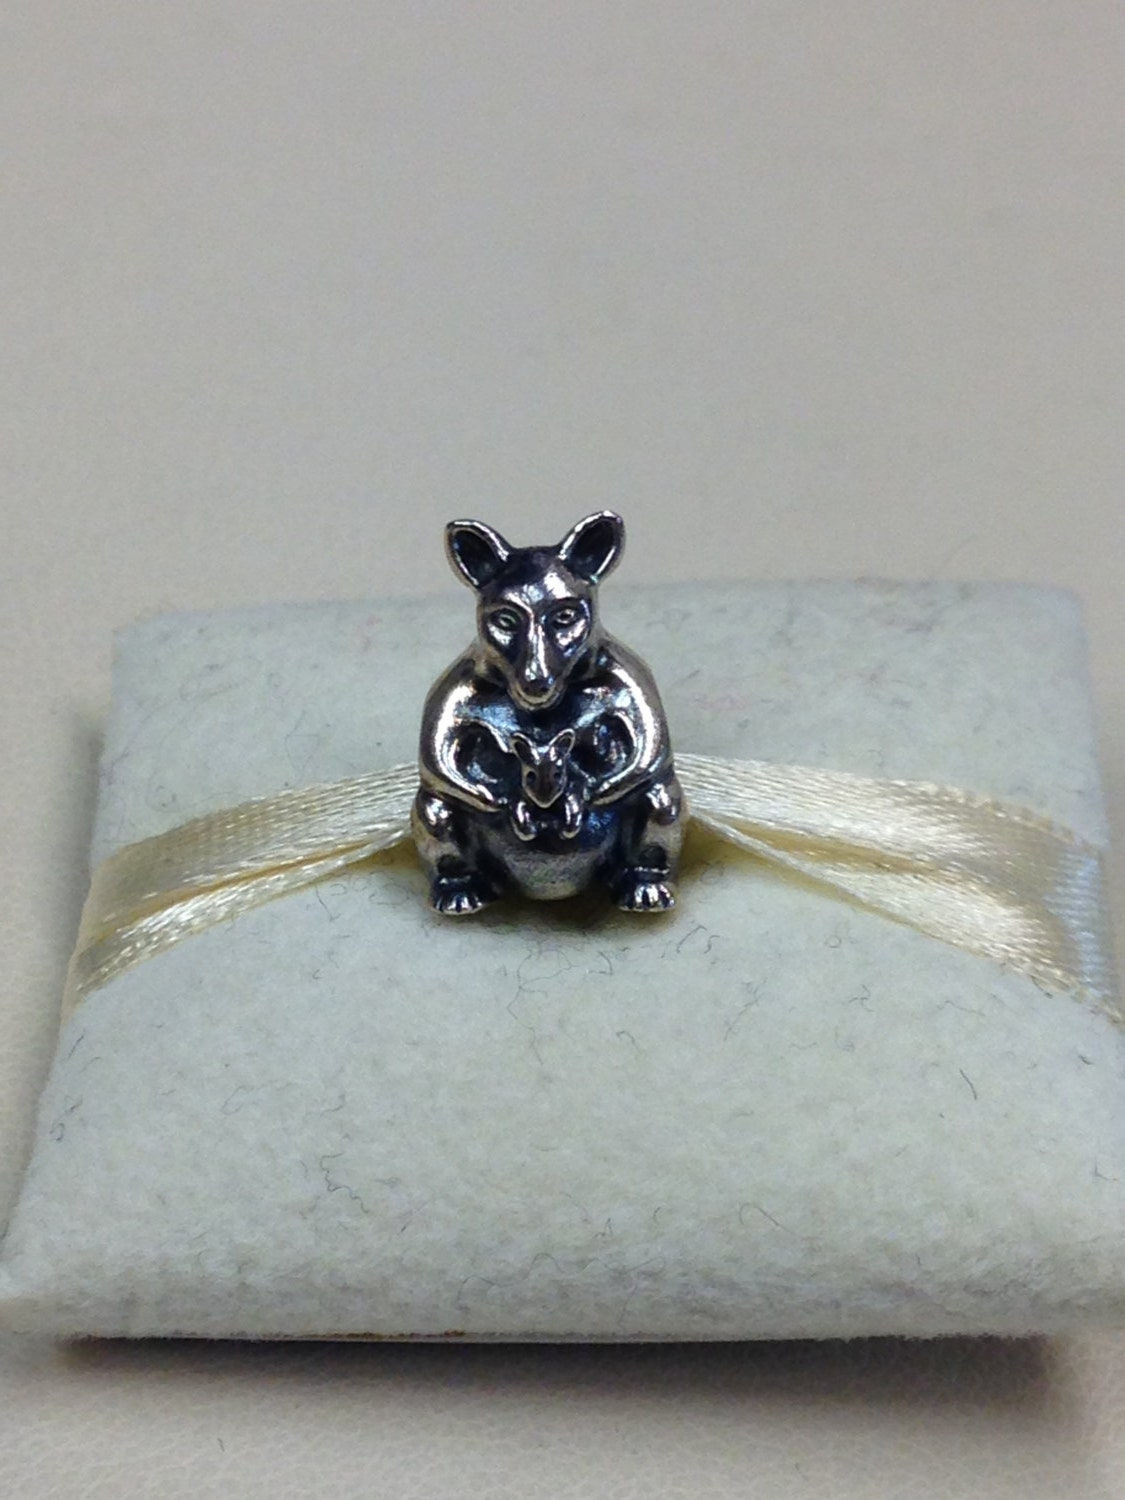 be0e0920c Authentic Pandora Silver Kangaroo With Baby Charm 790534 | Etsy